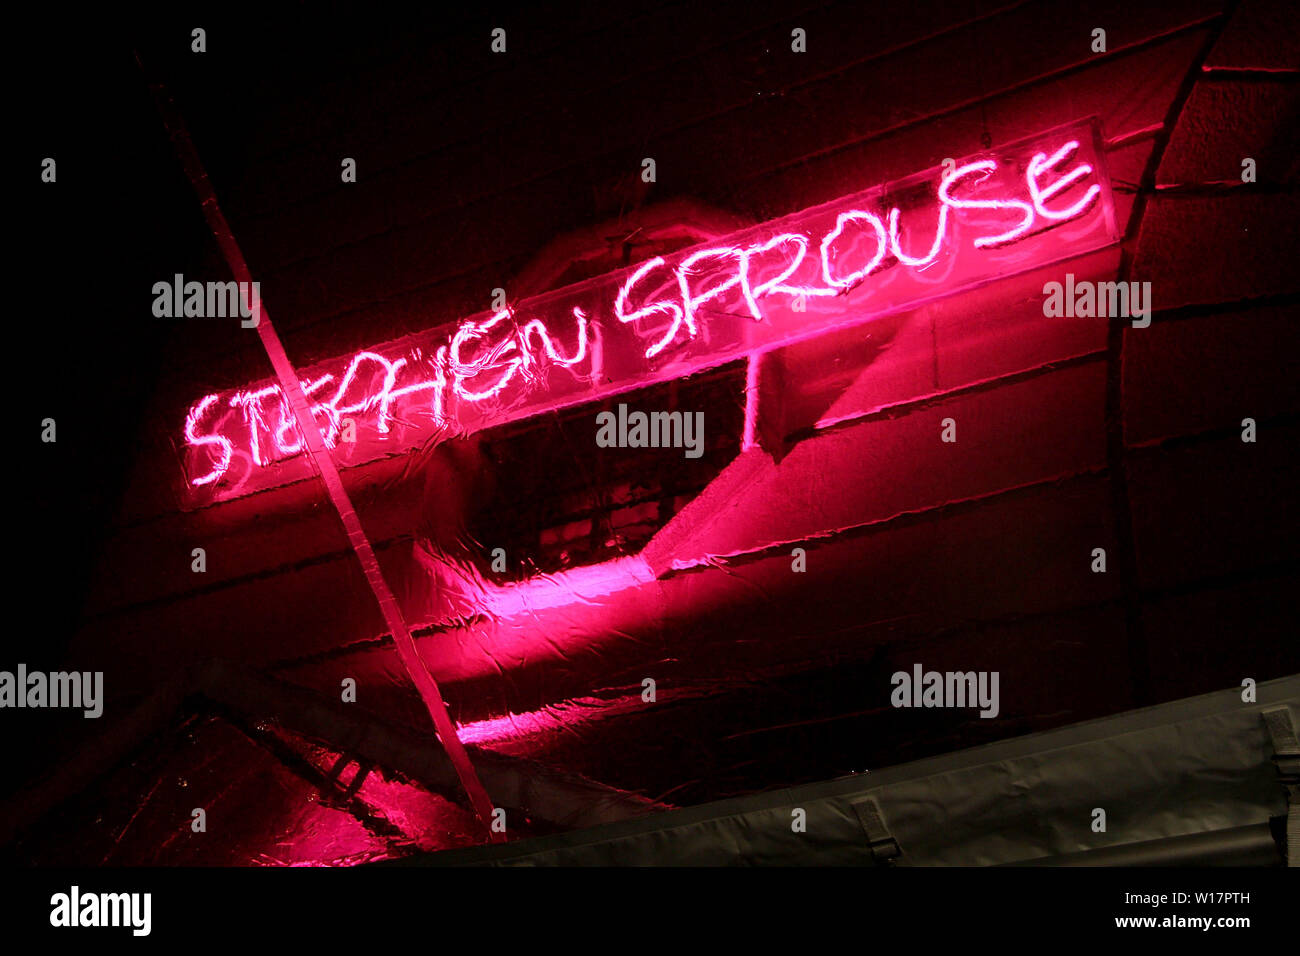 New York, USA. 8 January, 2009. Atmosphere at the Tribute to Stephen Sprouse at The Bowery Ballroom. Credit: Steve Mack/Alamy - Stock Image